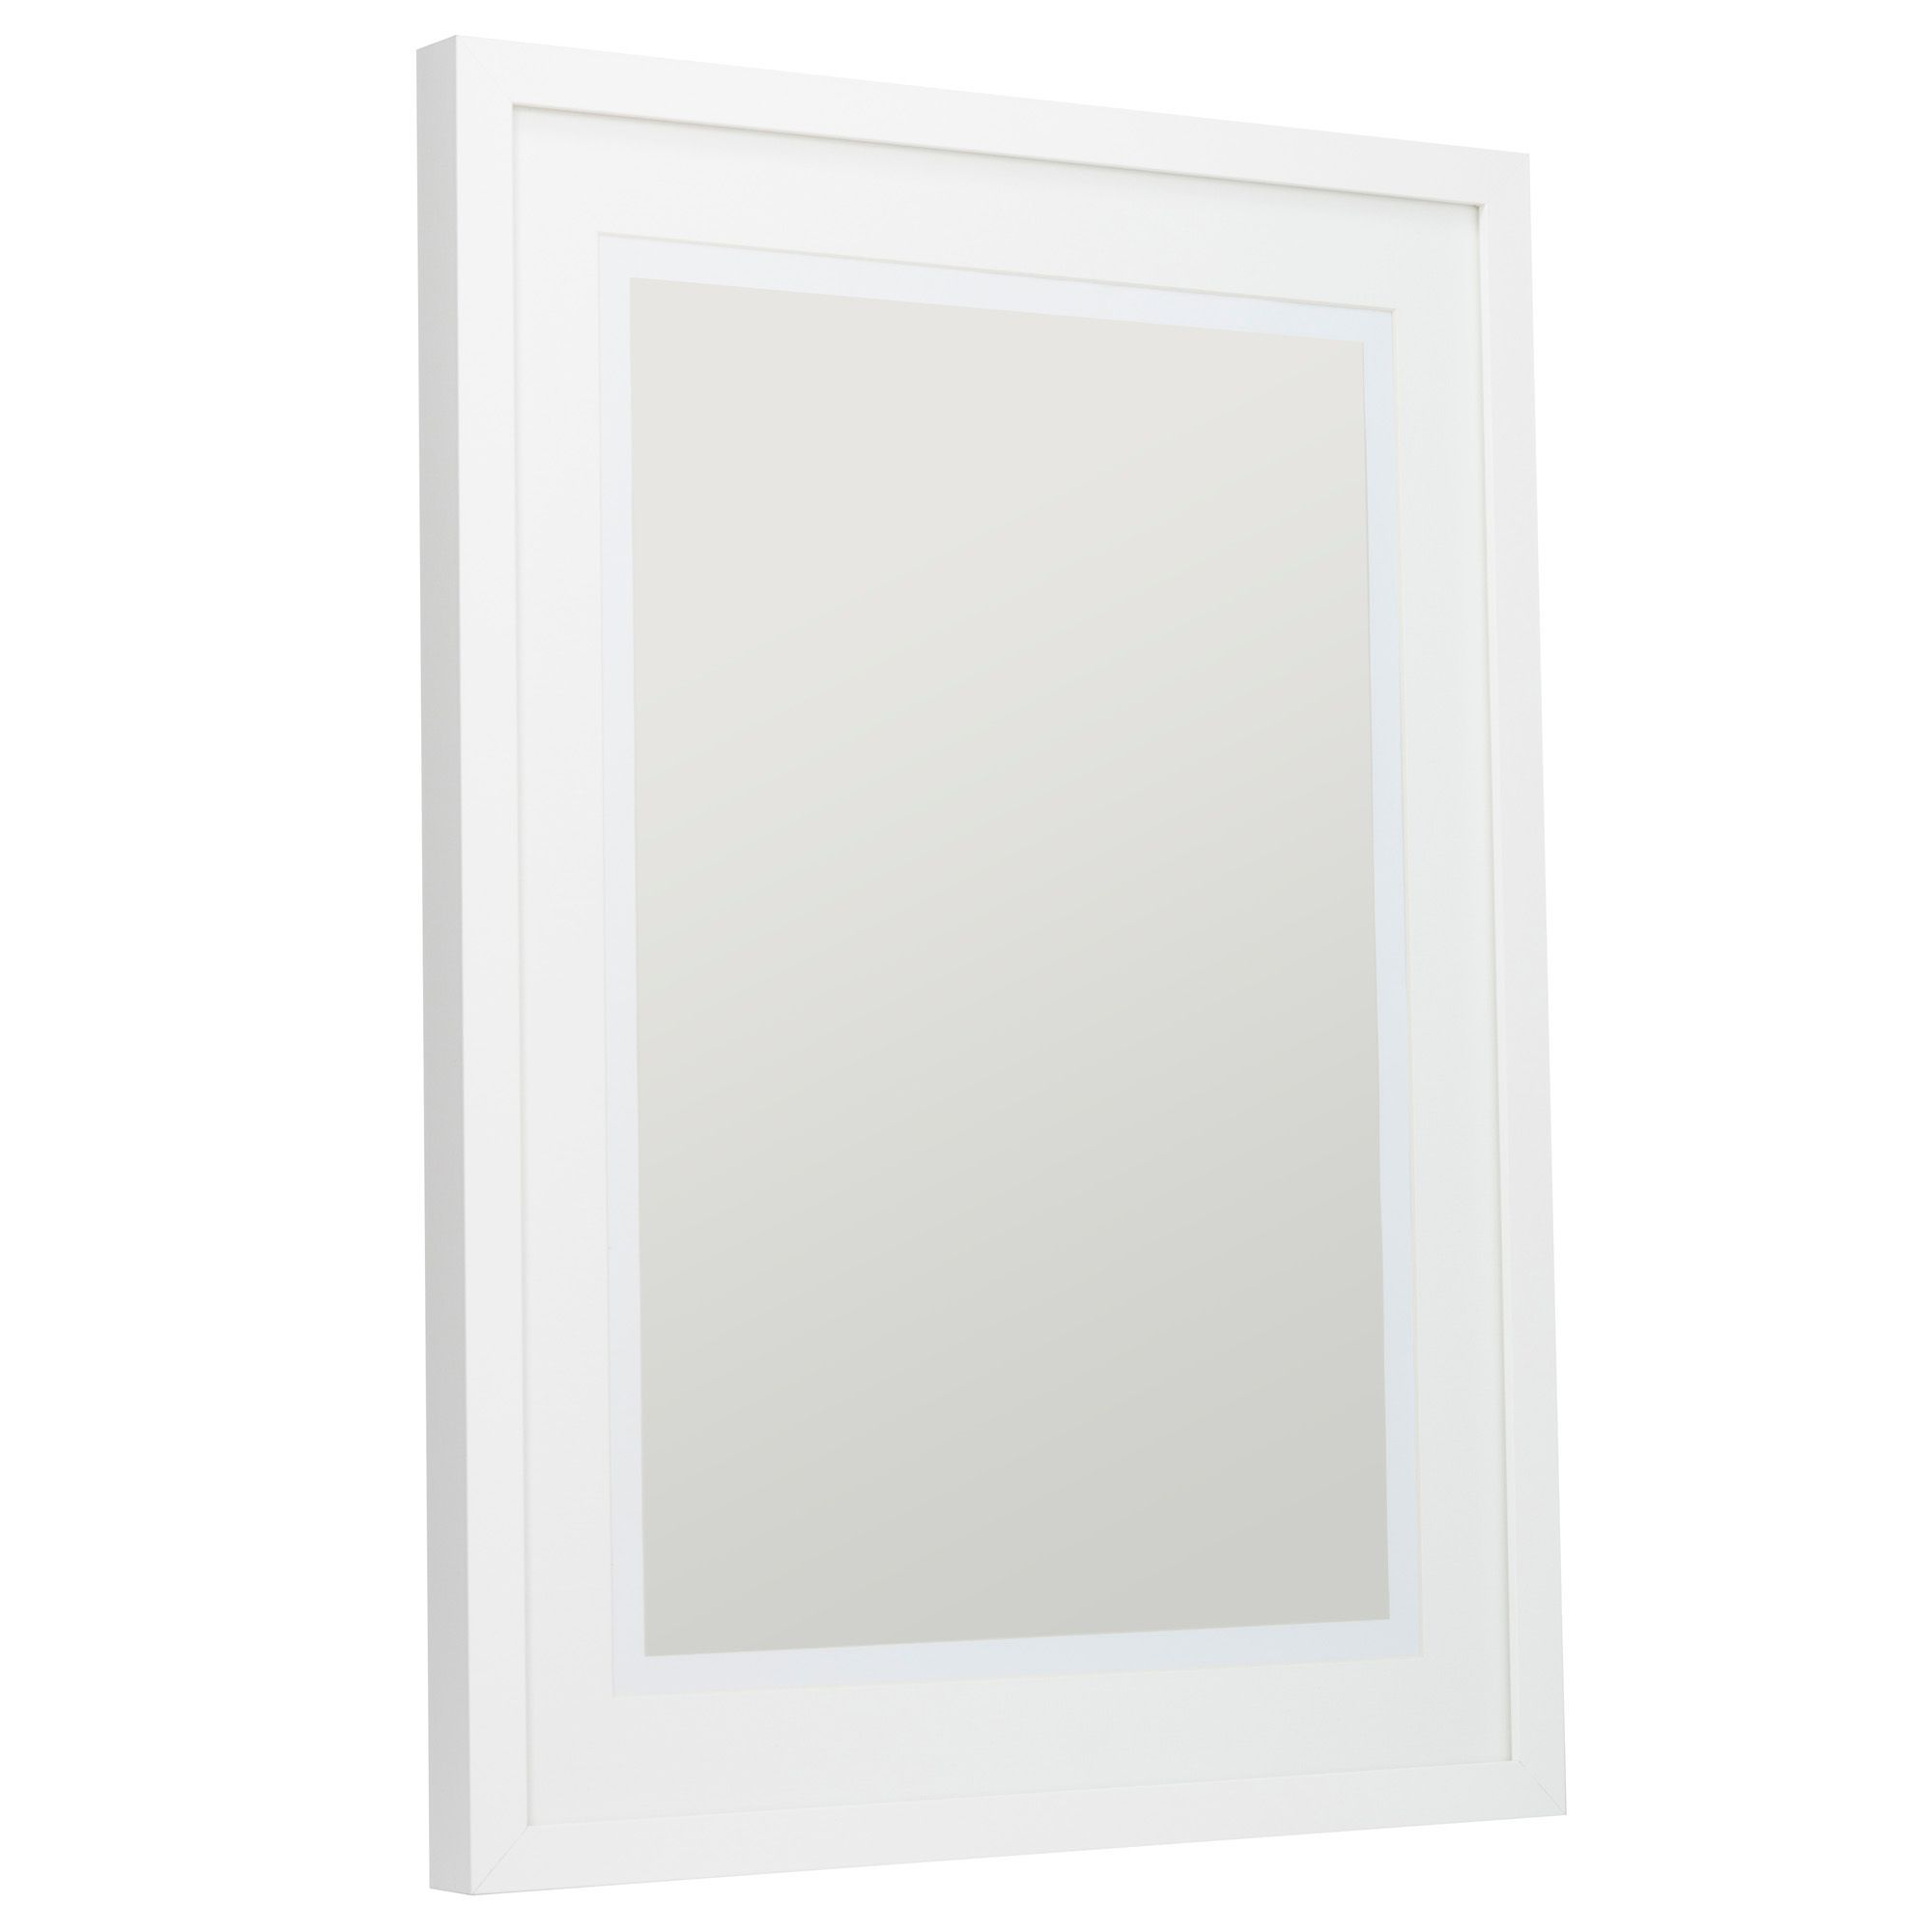 White Single Frame Wood Picture Frame H74cm x W54cm  : 502307600695501c from www.diy.com size 2000 x 2000 jpeg 50kB